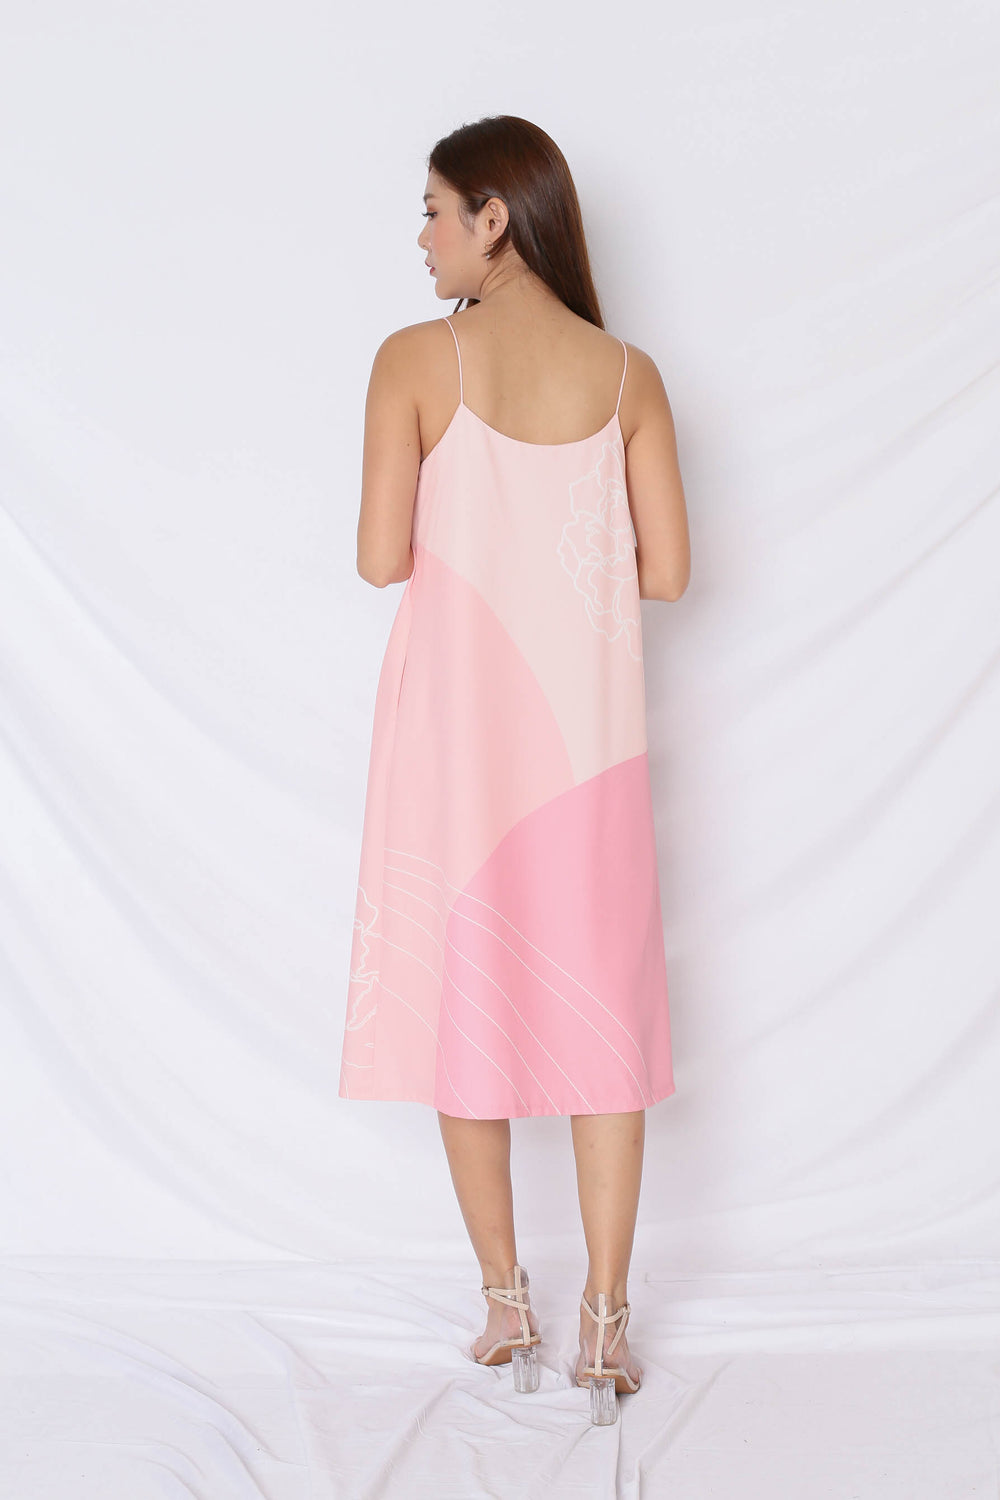 (PREMIUM) REUNION SPAG TENT DRESS IN PINK